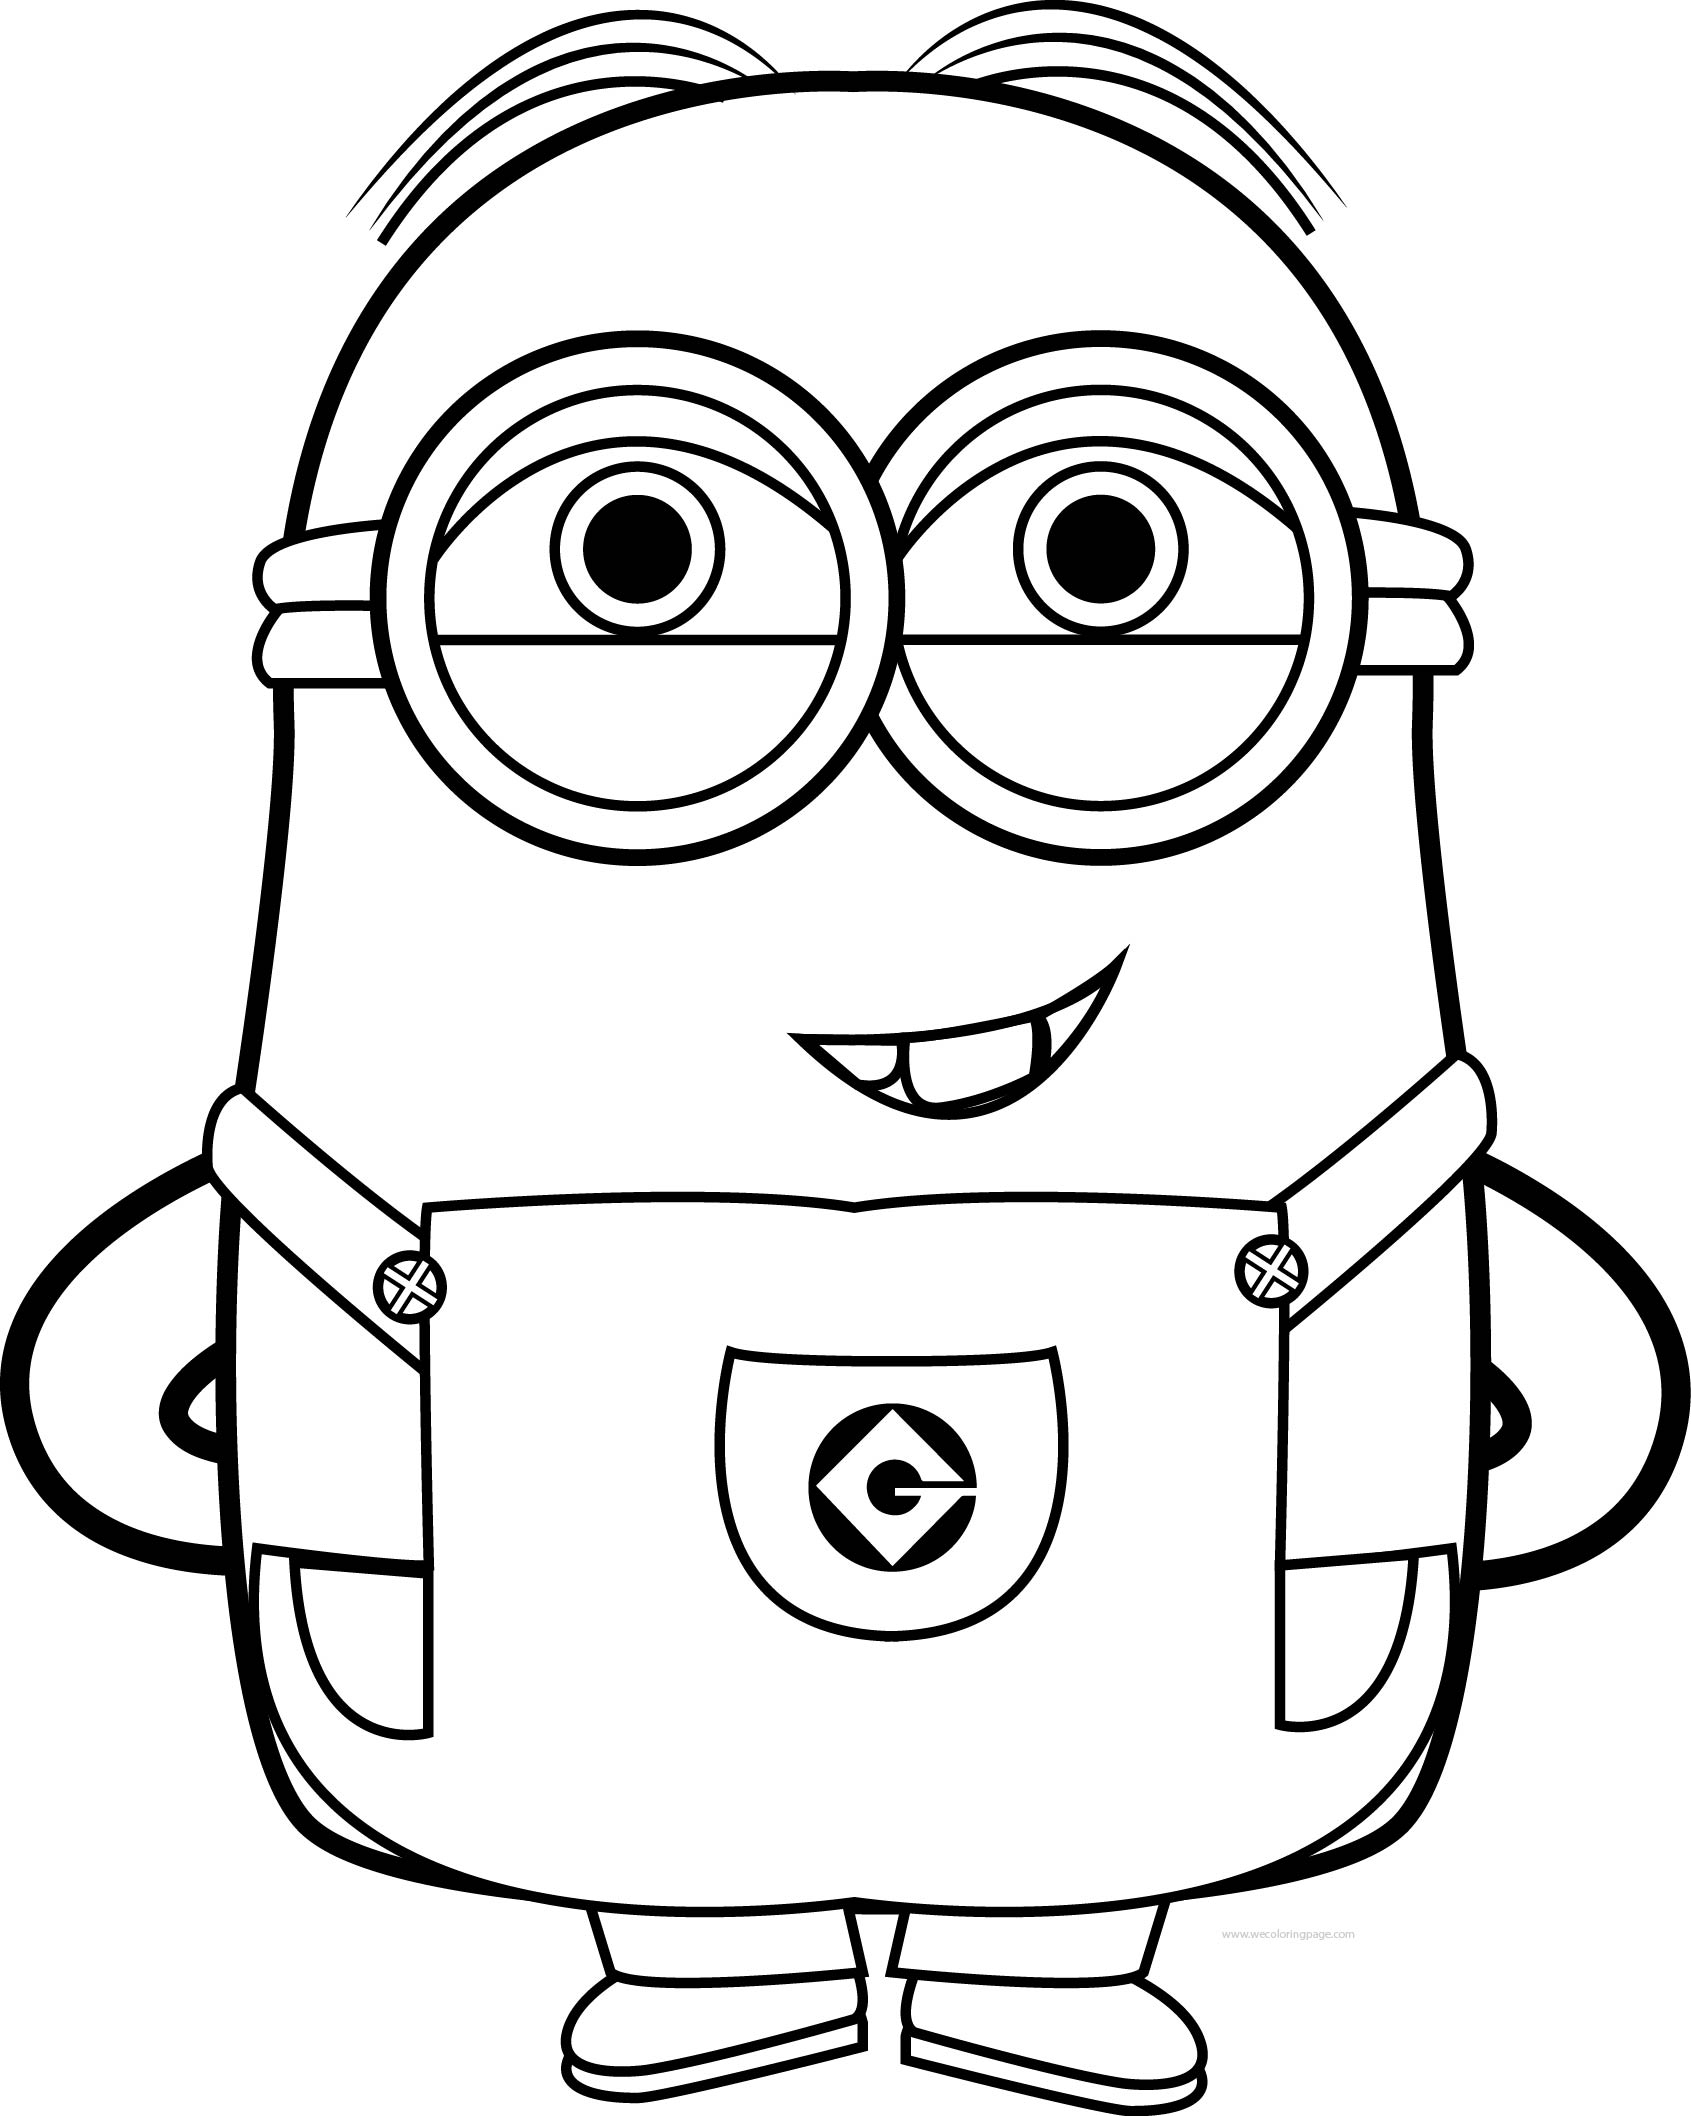 minion kevin coloring pages kevin the minion coloring pages at getcoloringscom free minion coloring pages kevin